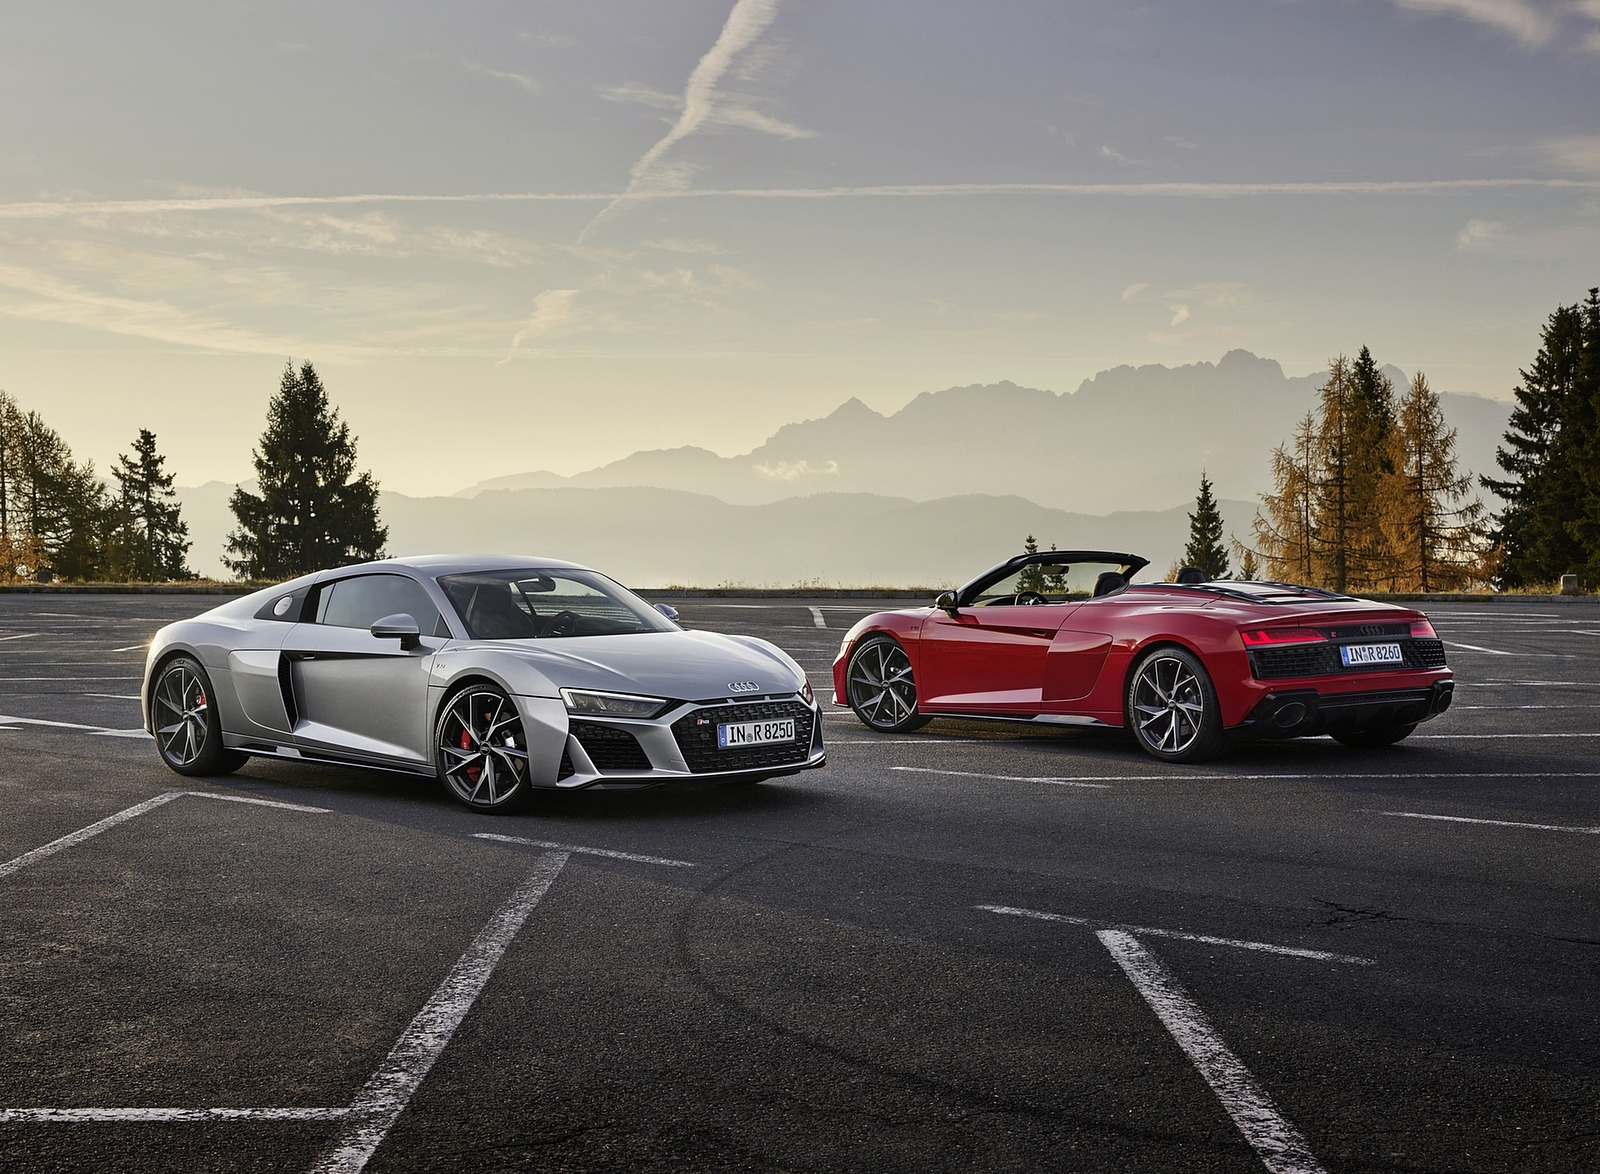 2020 Audi R8 V10 RWD Coupe and Spyder Wallpapers #11 of 32